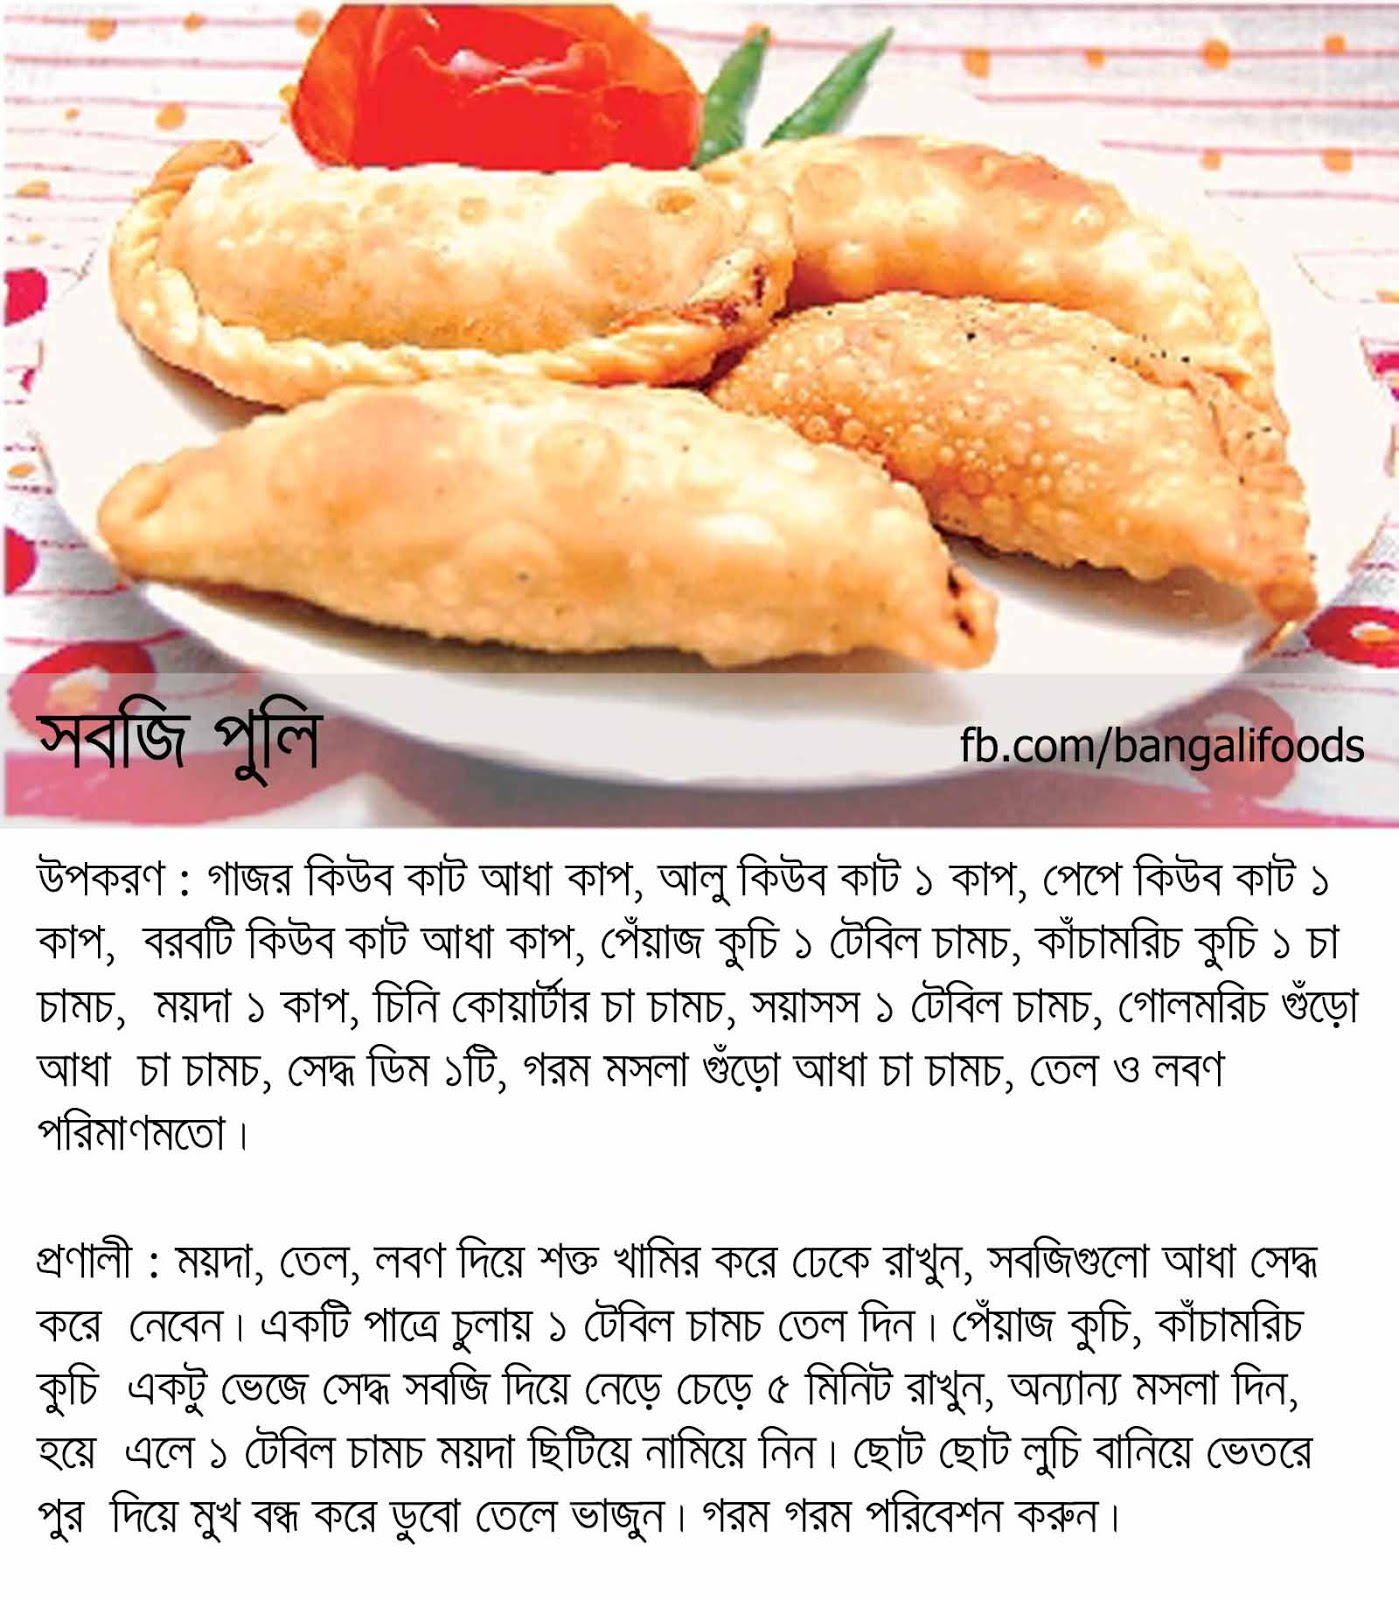 Bangali foods snack food recipes in bengali bengali recipe sobji puli forumfinder Gallery